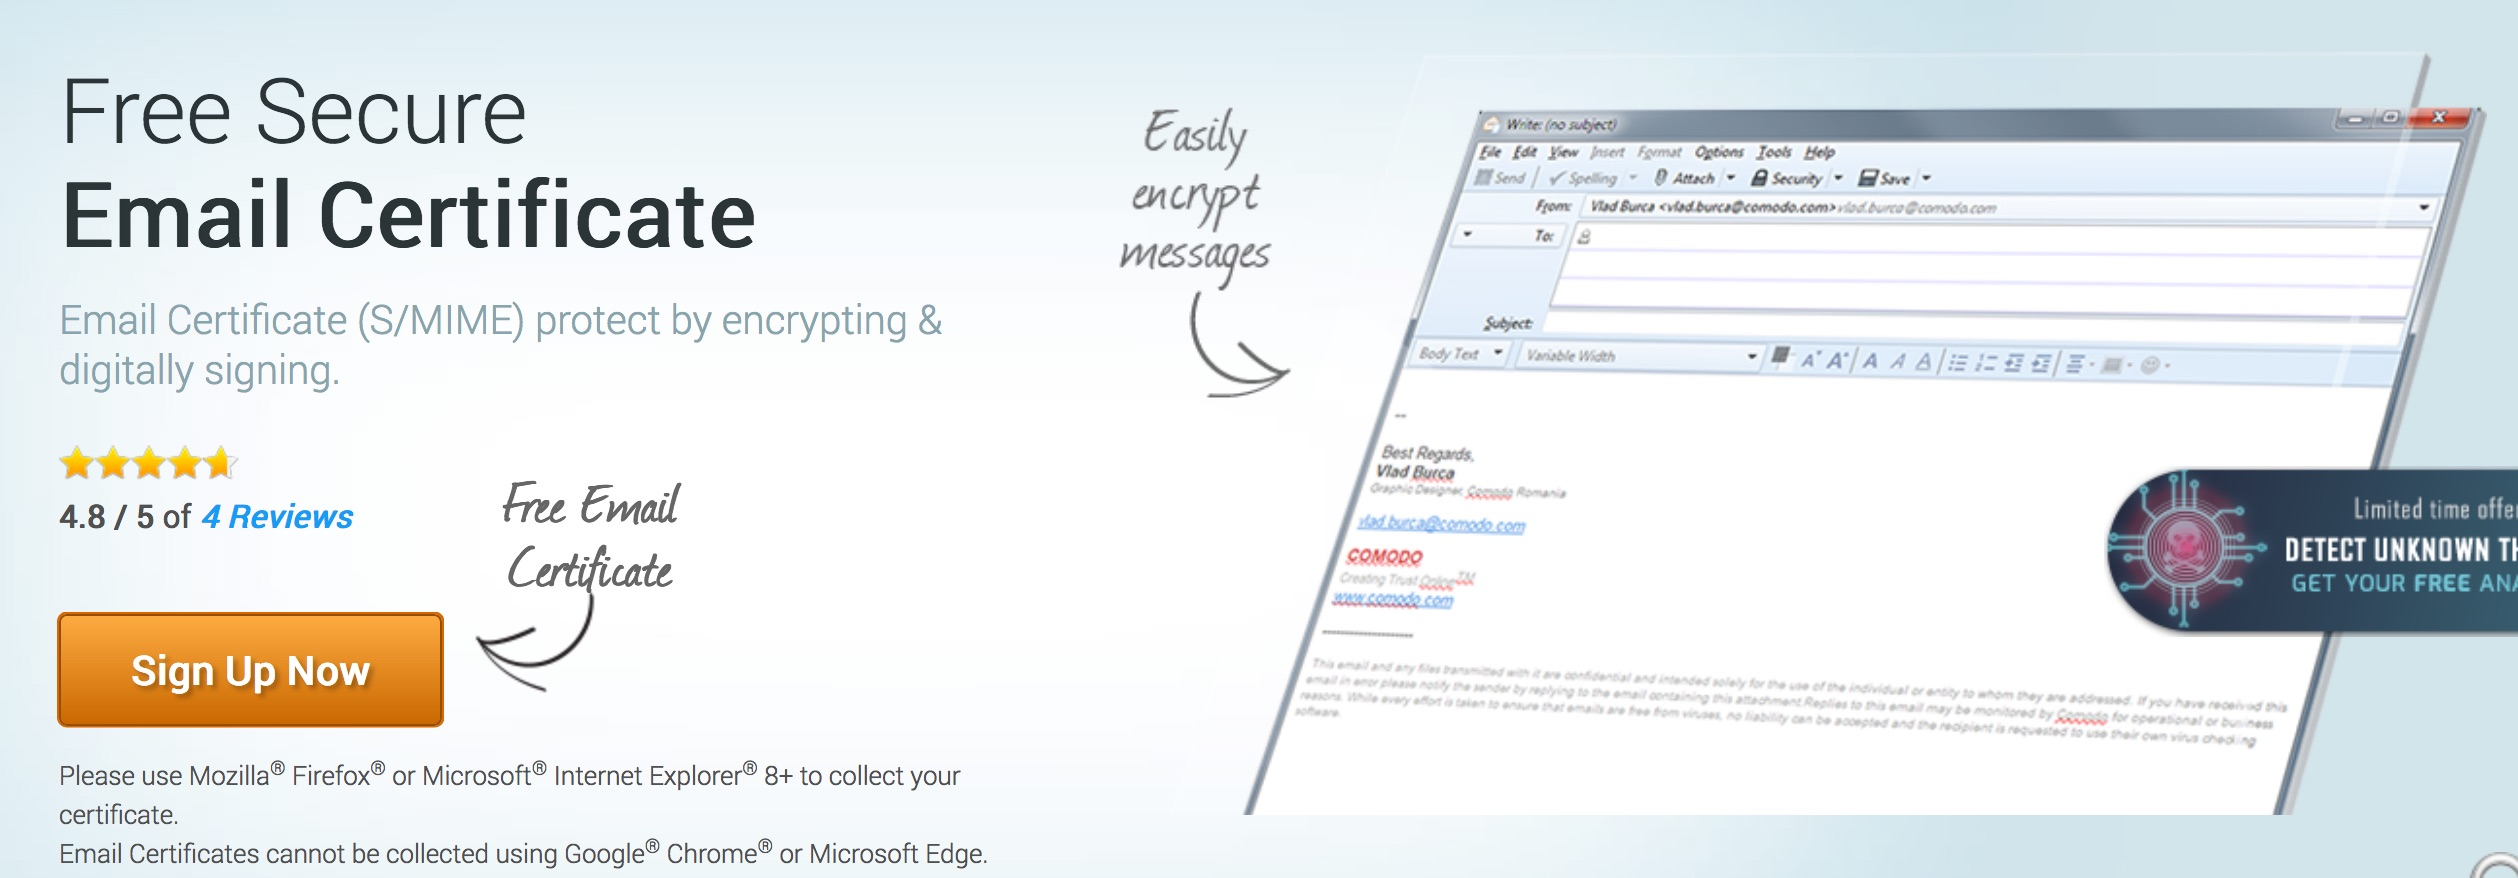 Free_Secure_Email_Certificate_with_Digital_Signature